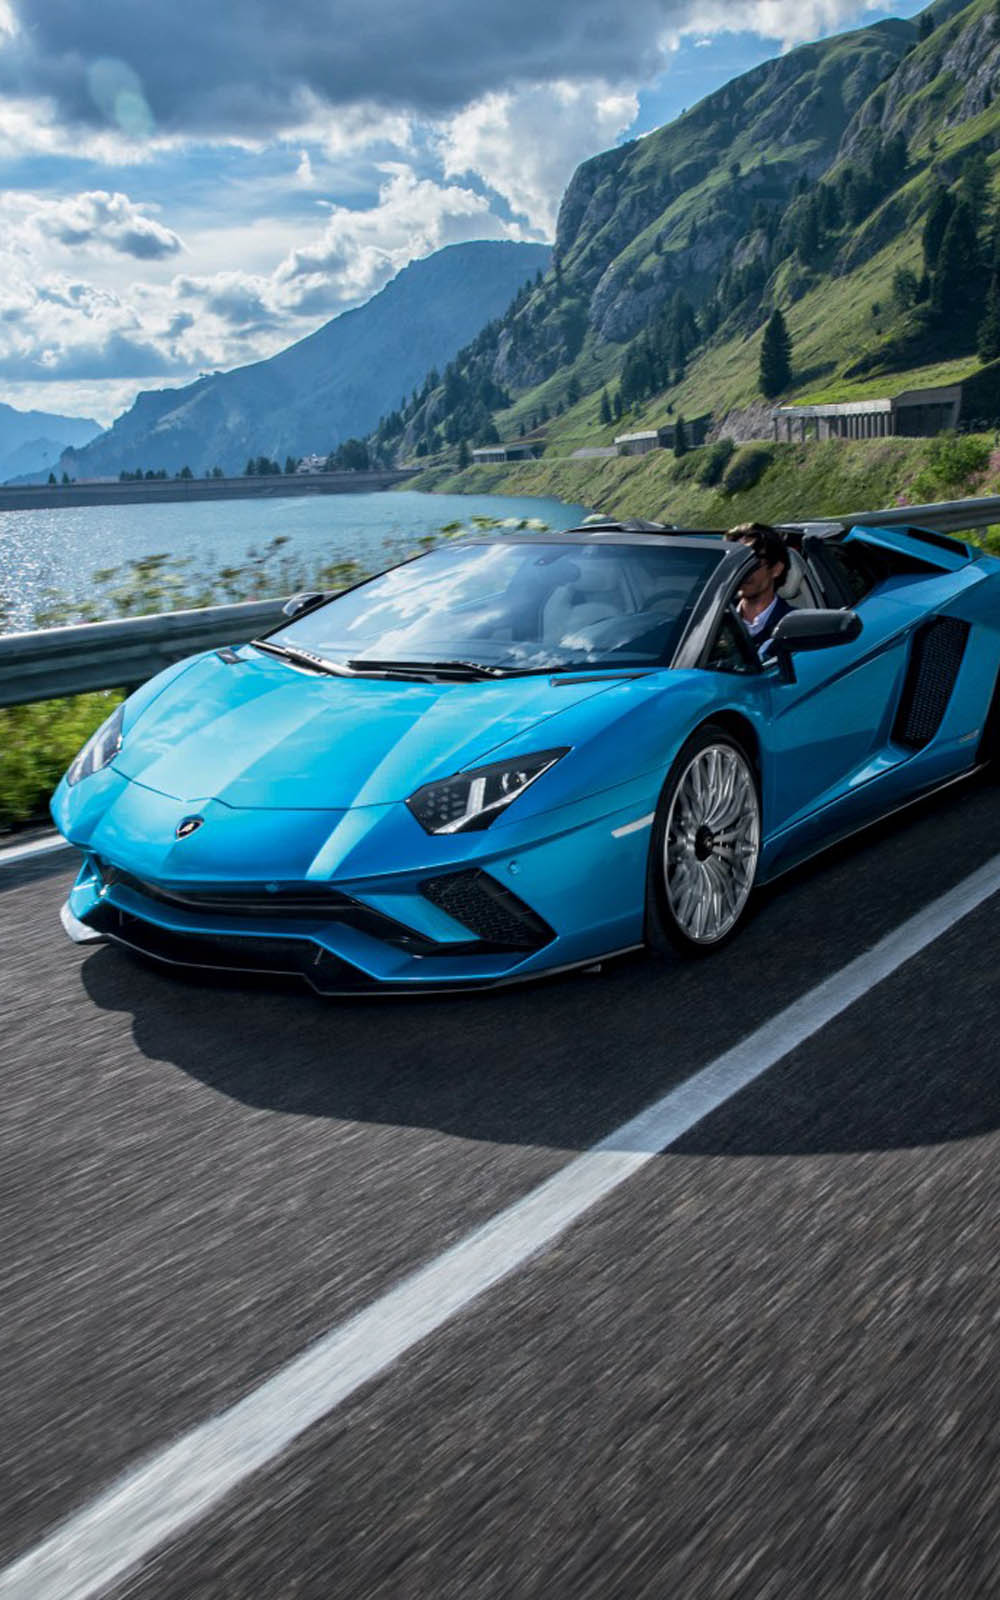 Car Hdr Wallpaper Download Blue Lamborghini Aventador S Roadster Free Pure